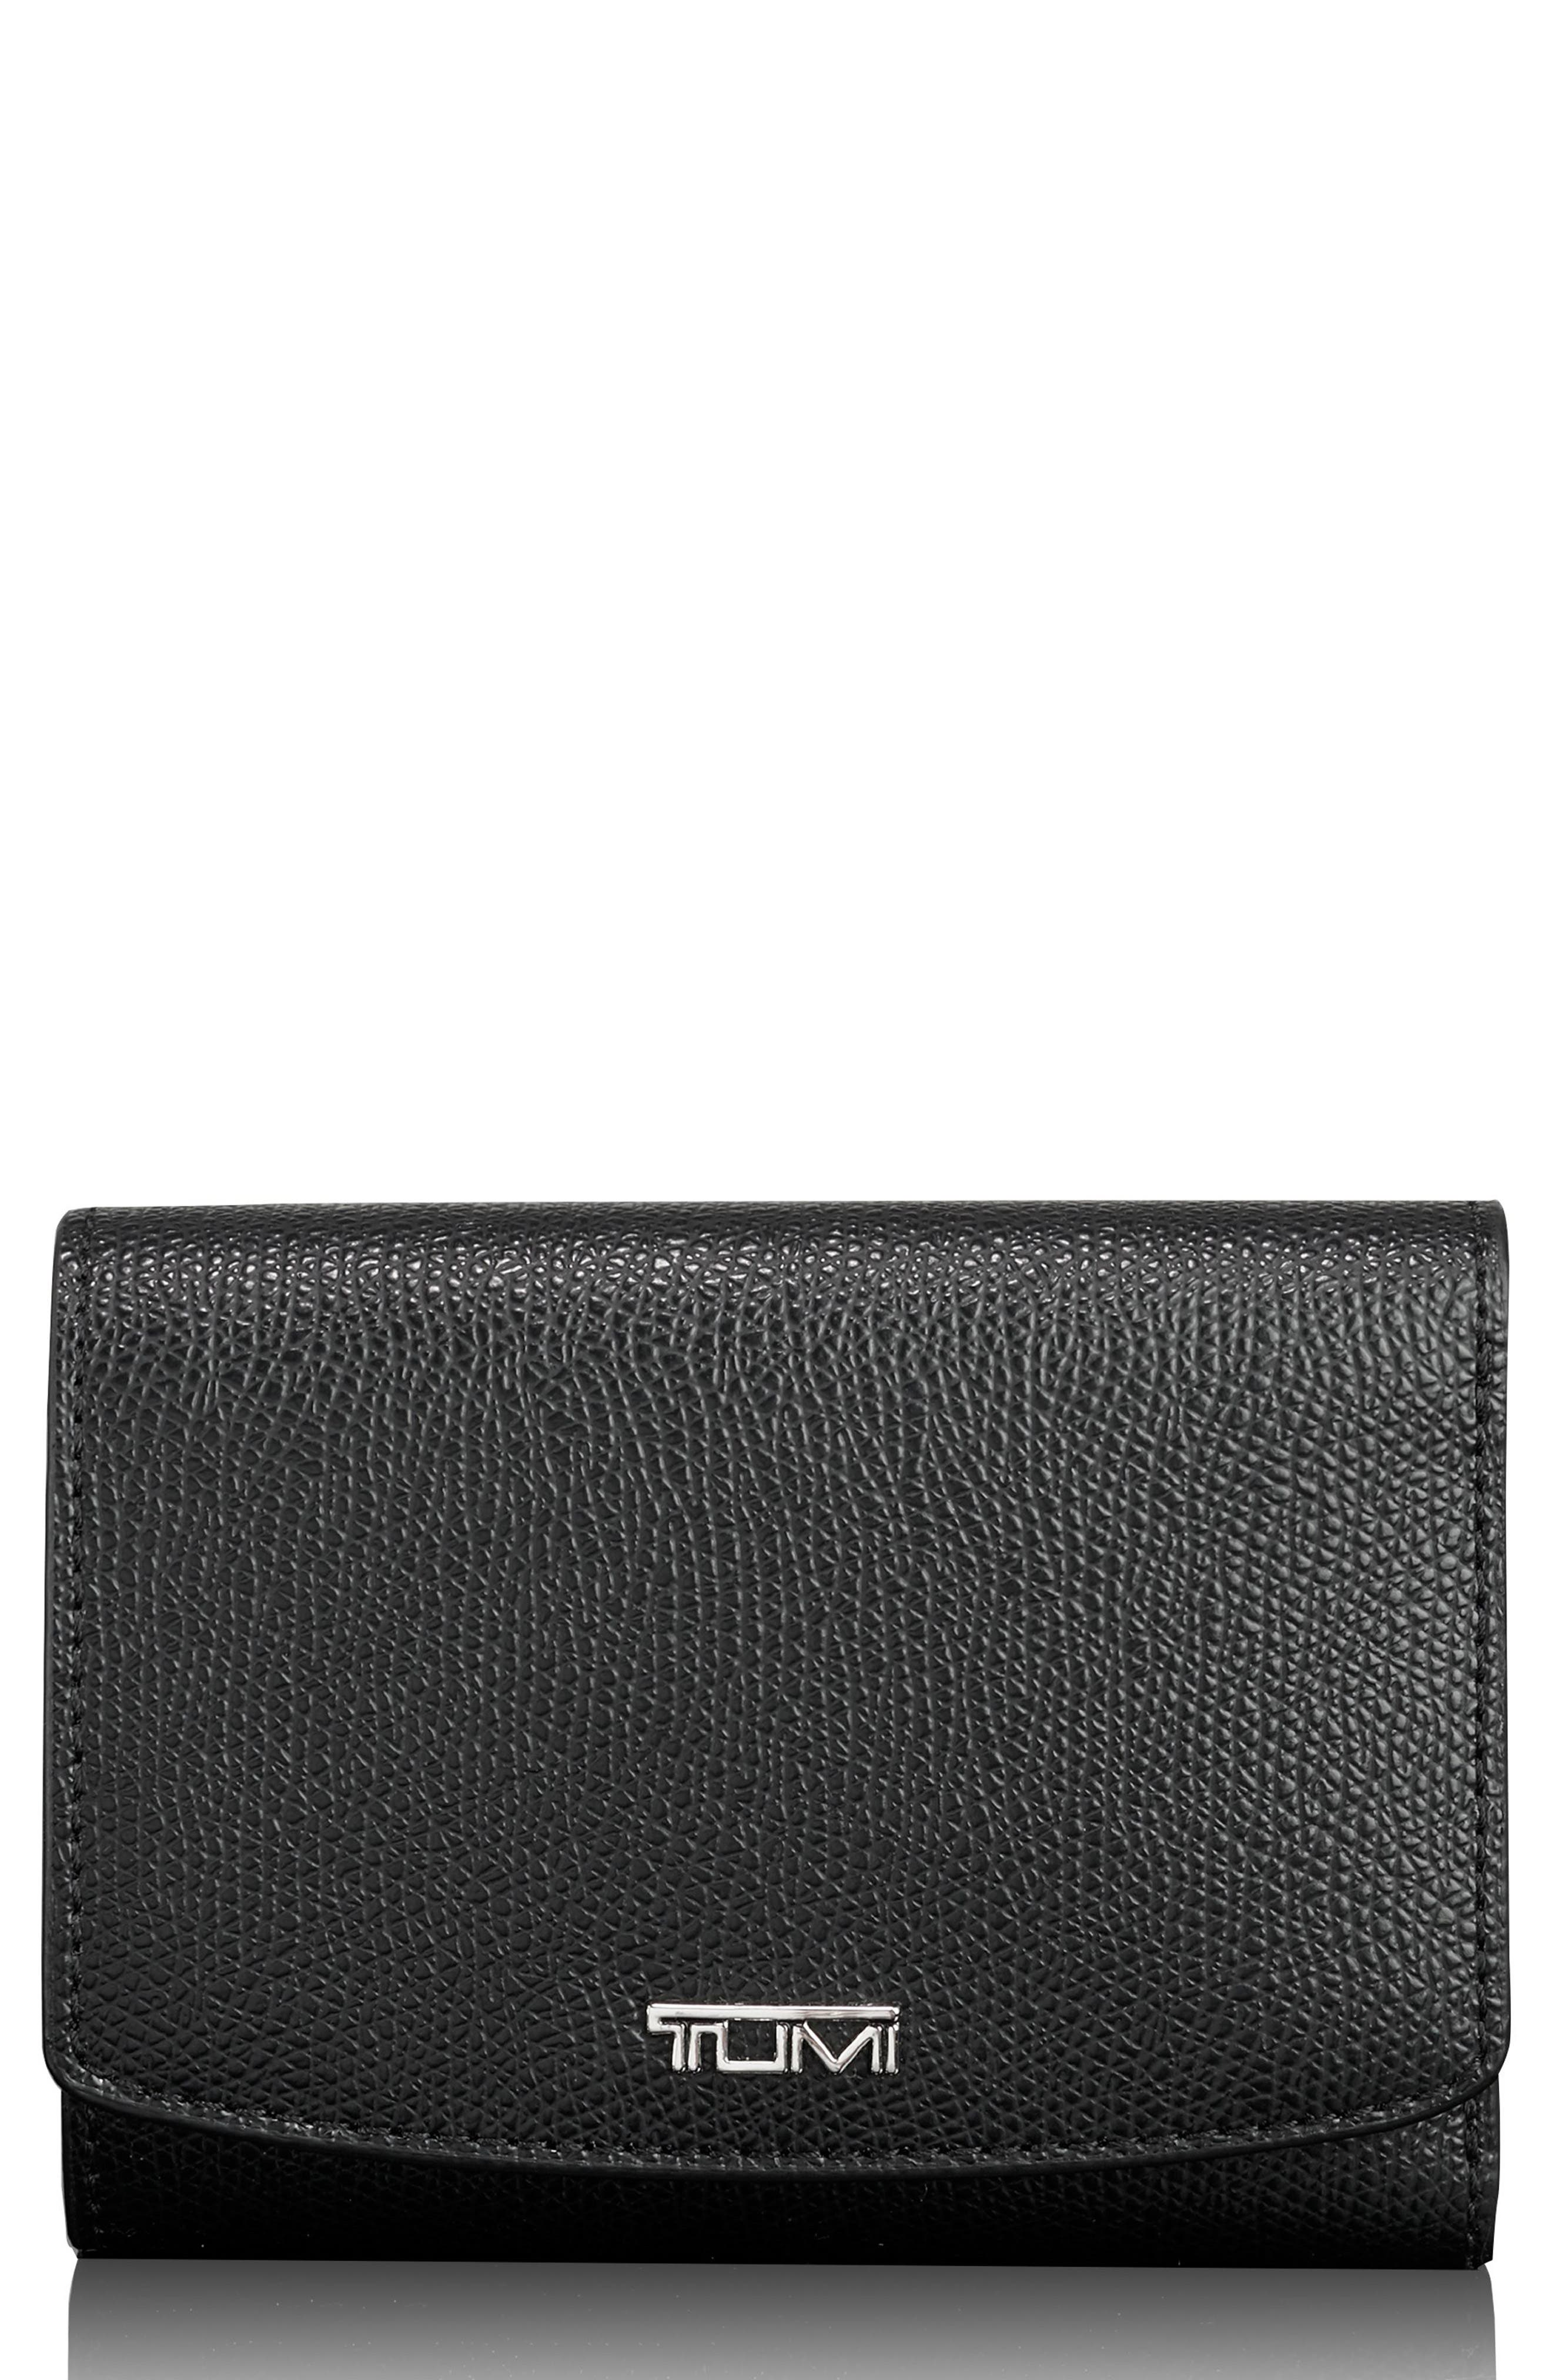 RFID Trifold Wallet,                         Main,                         color, 001